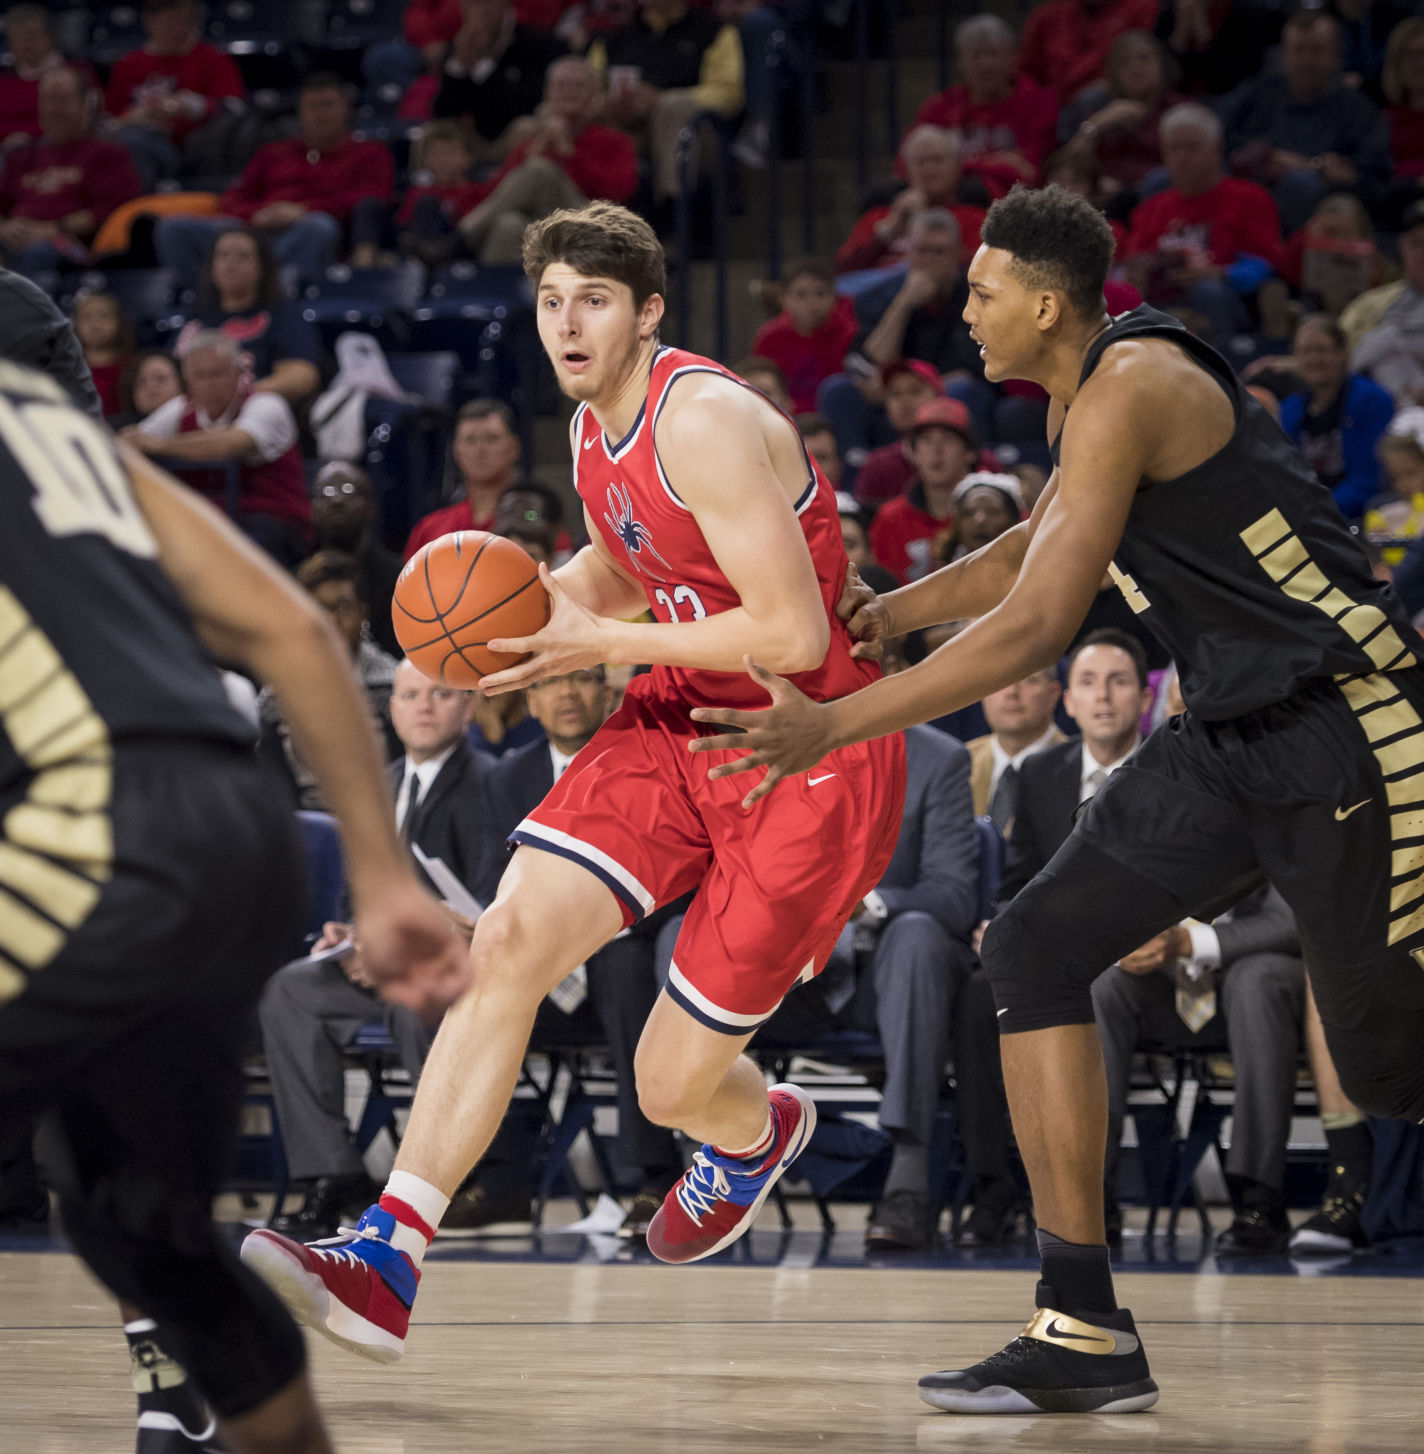 Grant Golden will have big shoes to fill in Richmond as a playmaking big man